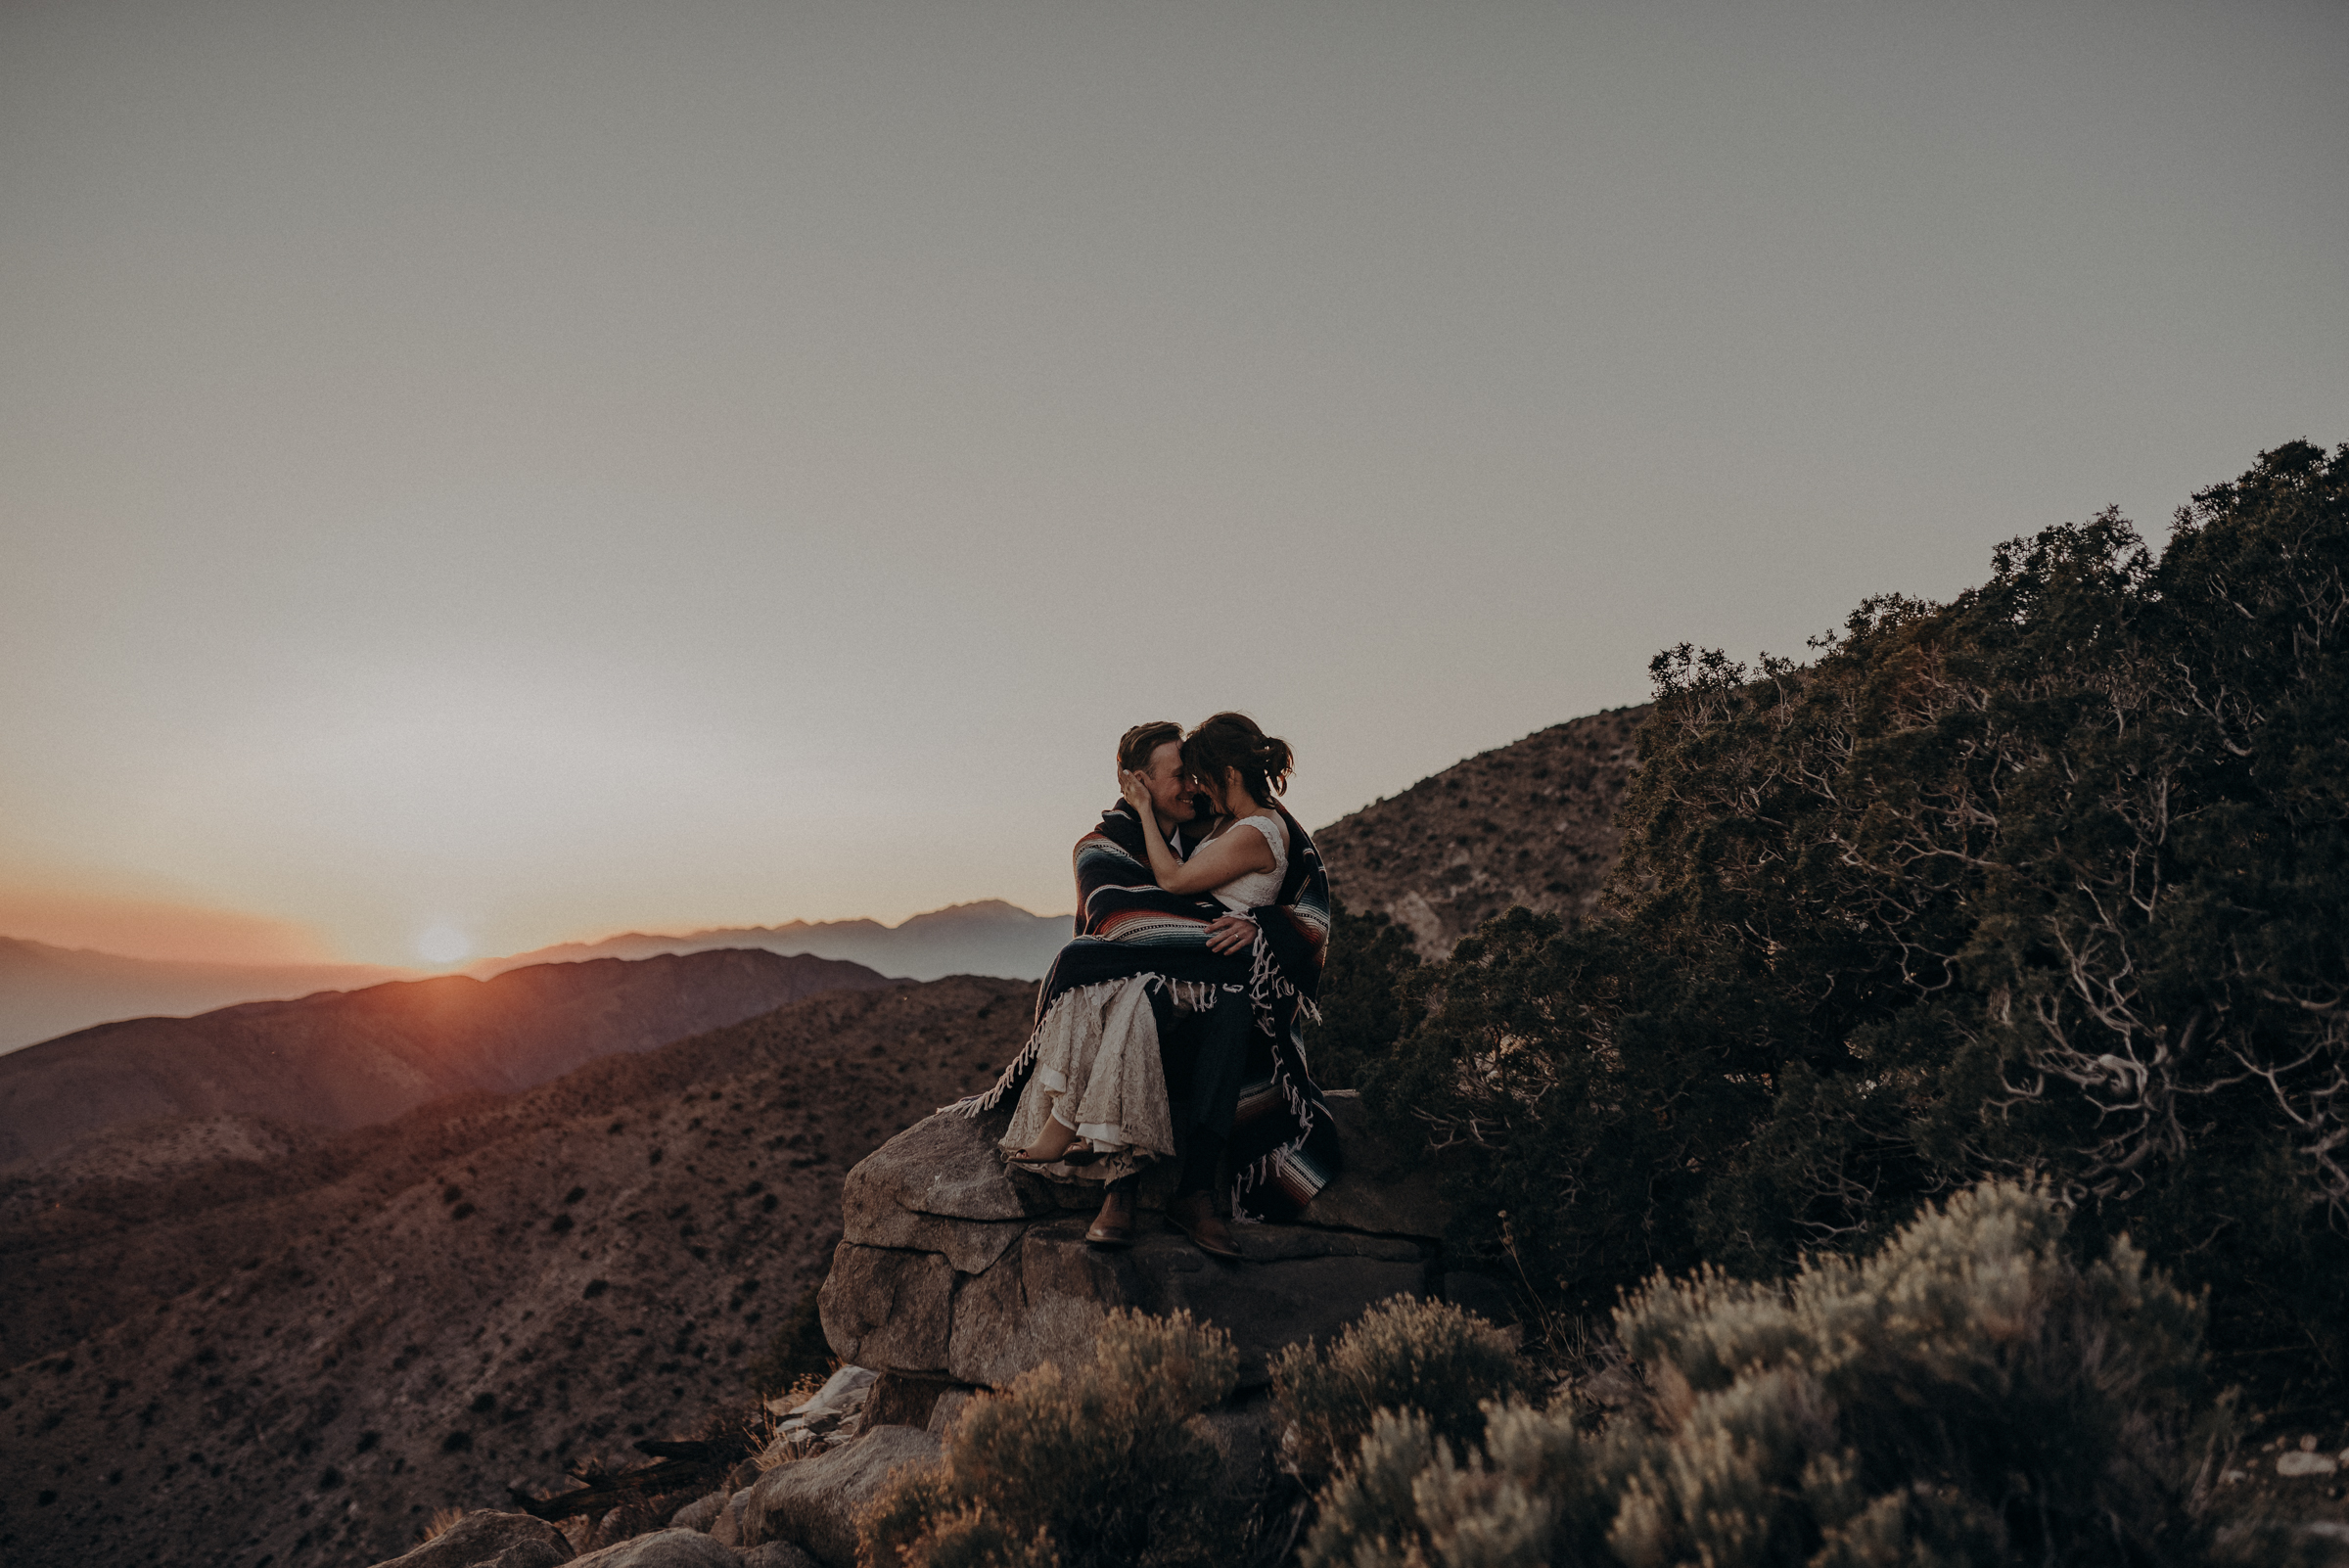 Joshua Tree Elopement - Los Angeles Wedding Photographers - IsaiahAndTaylor.com-122.jpg